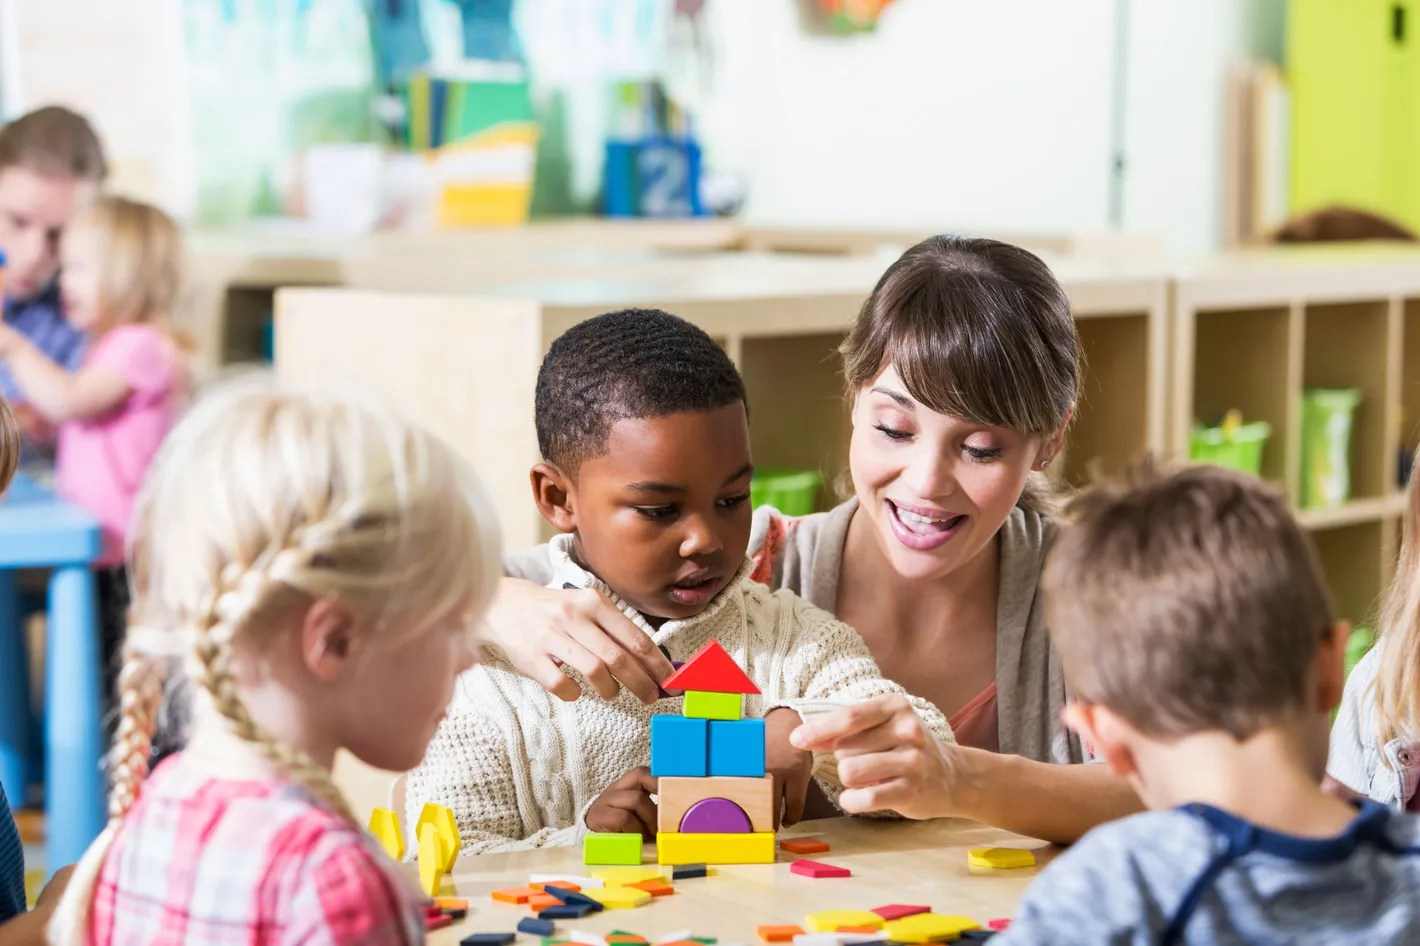 Preschool Teachers May Be Racially Biased A New Study Found